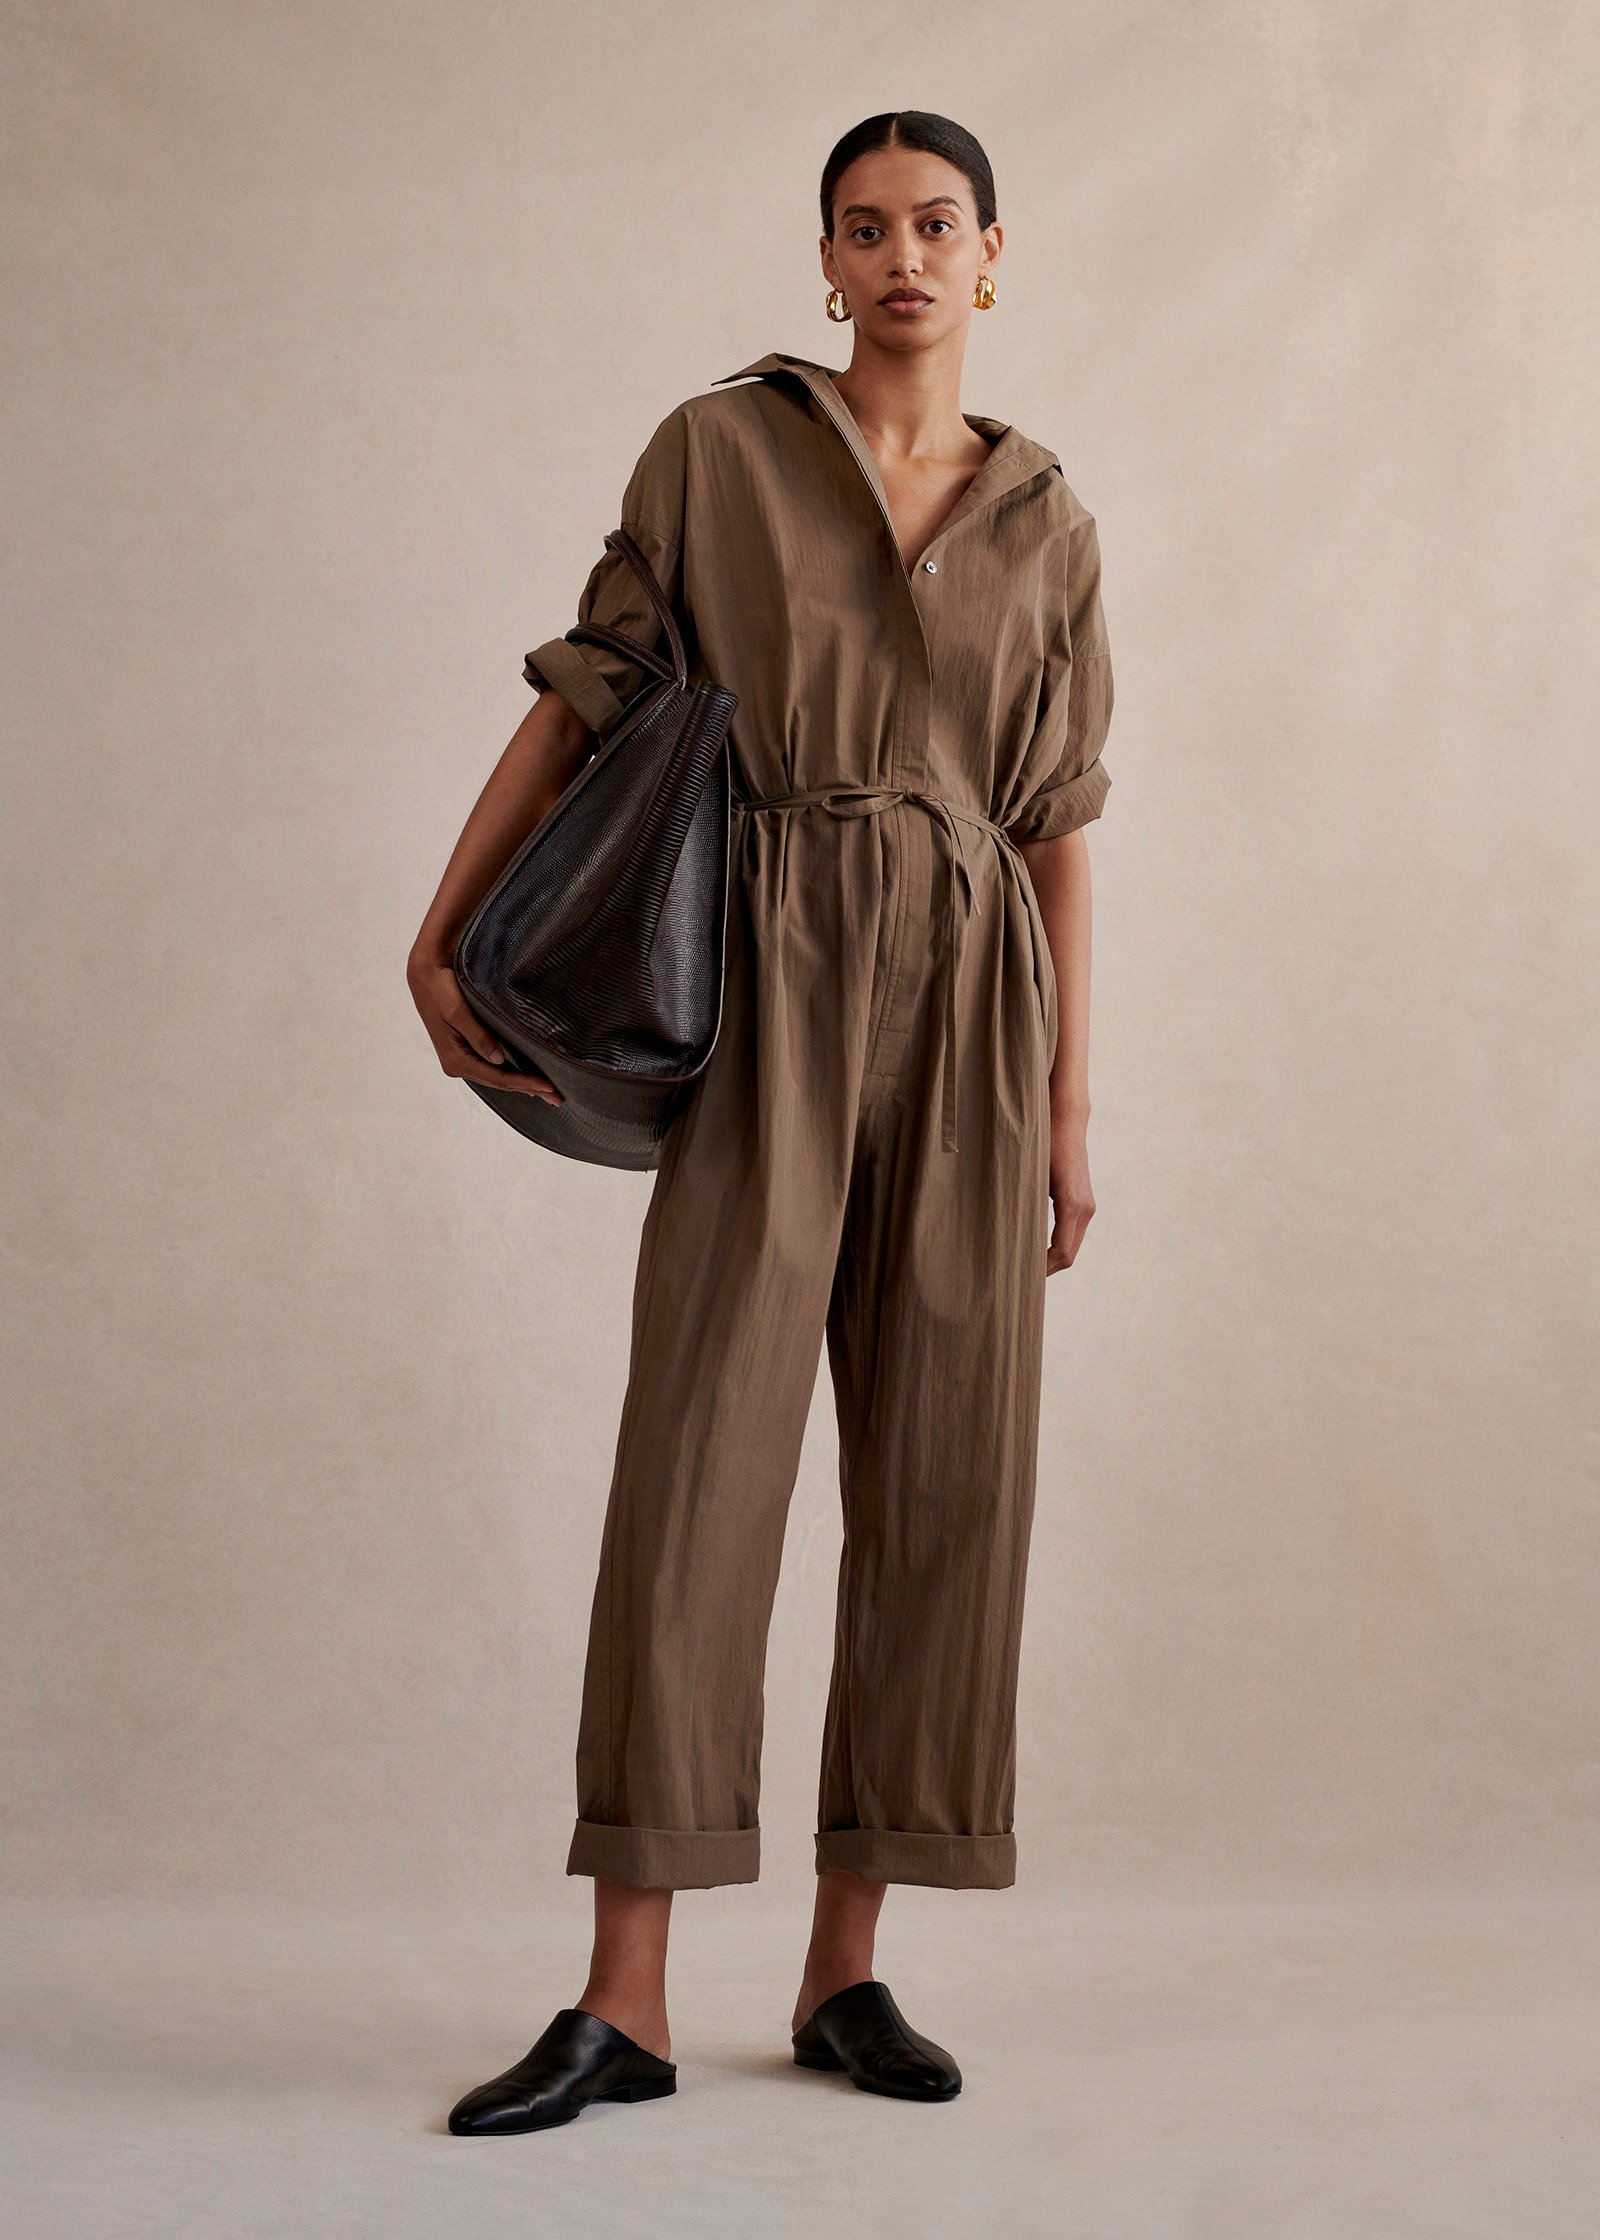 Drawstring Jumpsuit In Cotton - Taupe - by Zoe Gherter for Co